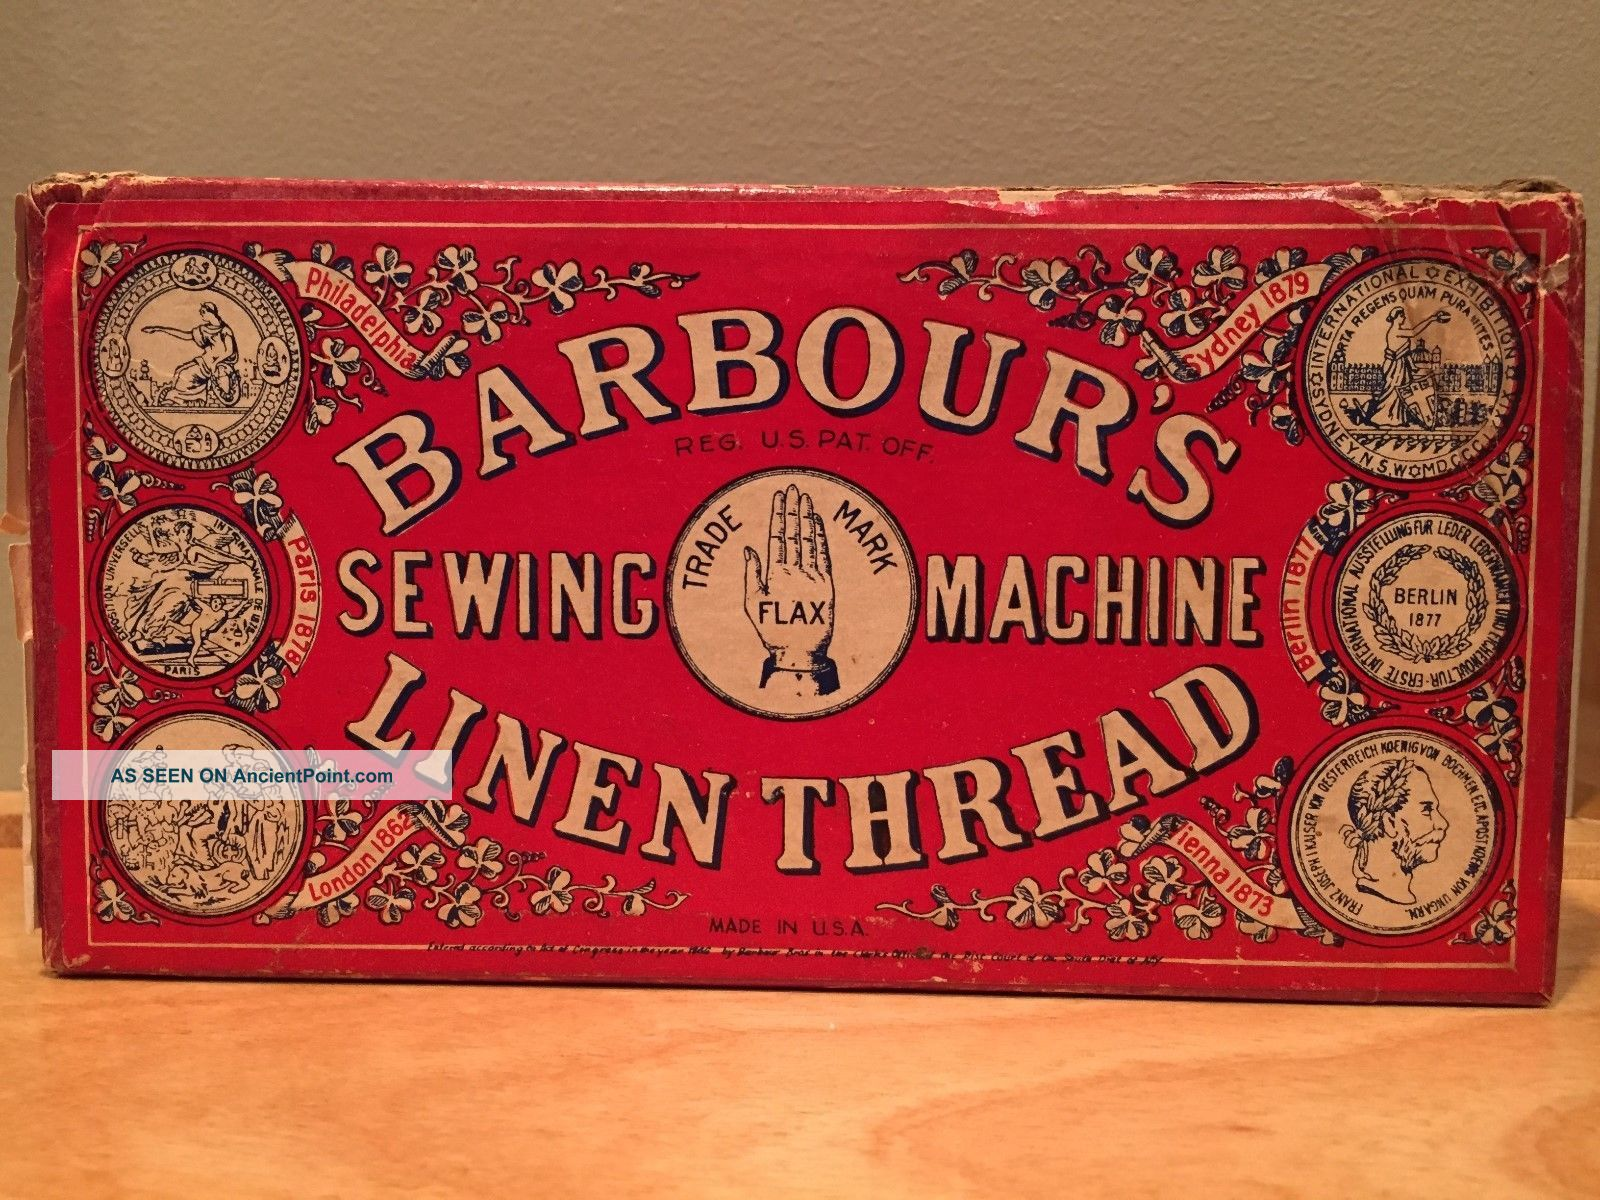 Antique Vintage Barbour ' S Irish Sewing Machine Linen Thread Box Made In The Usa Baskets & Boxes photo